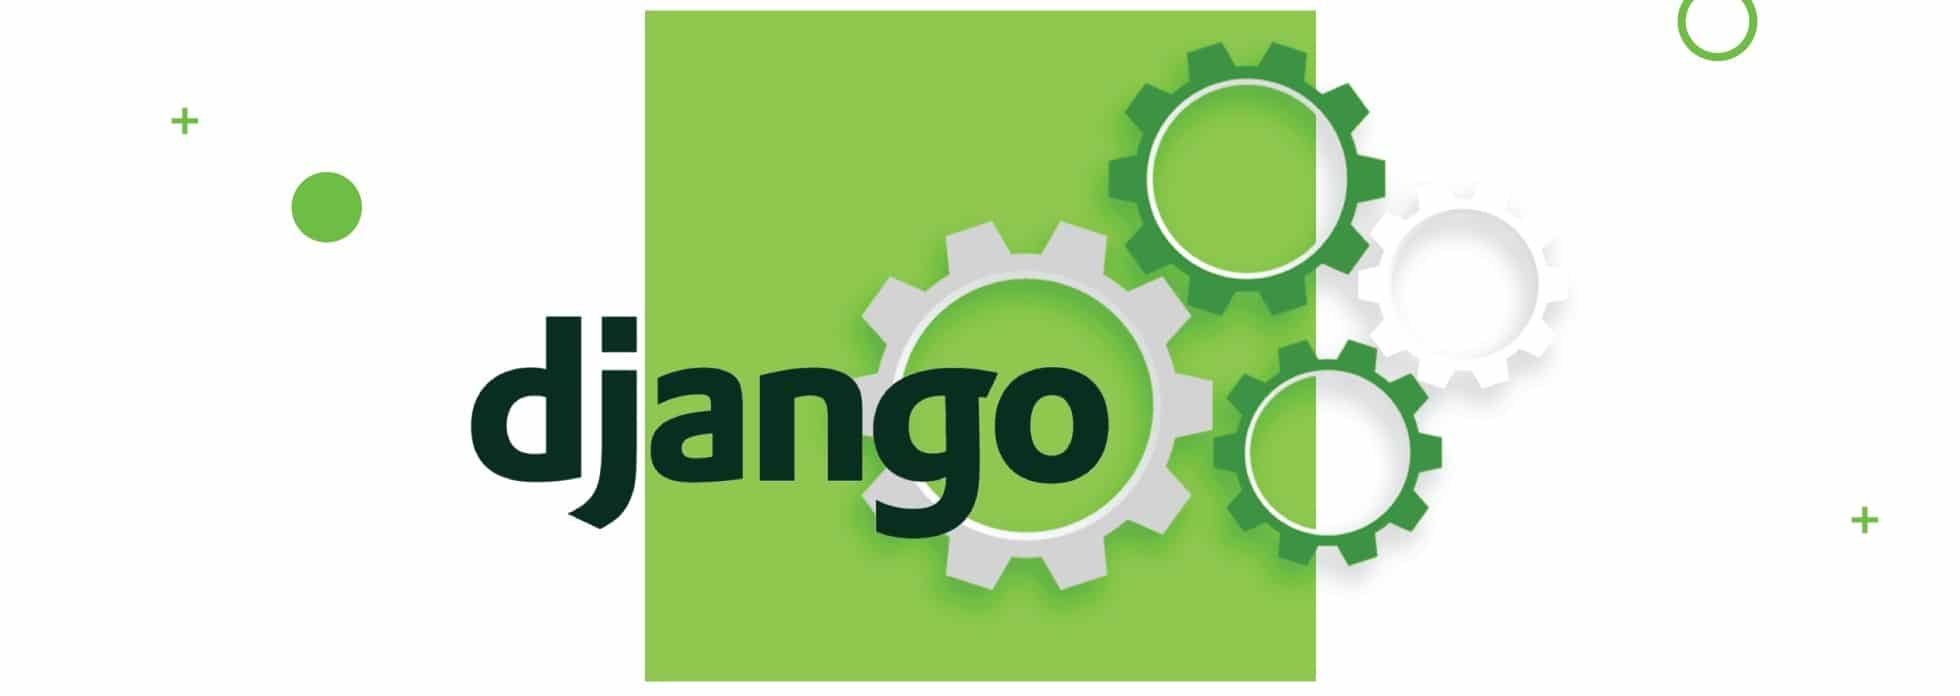 Django Development Services - SystemOneX